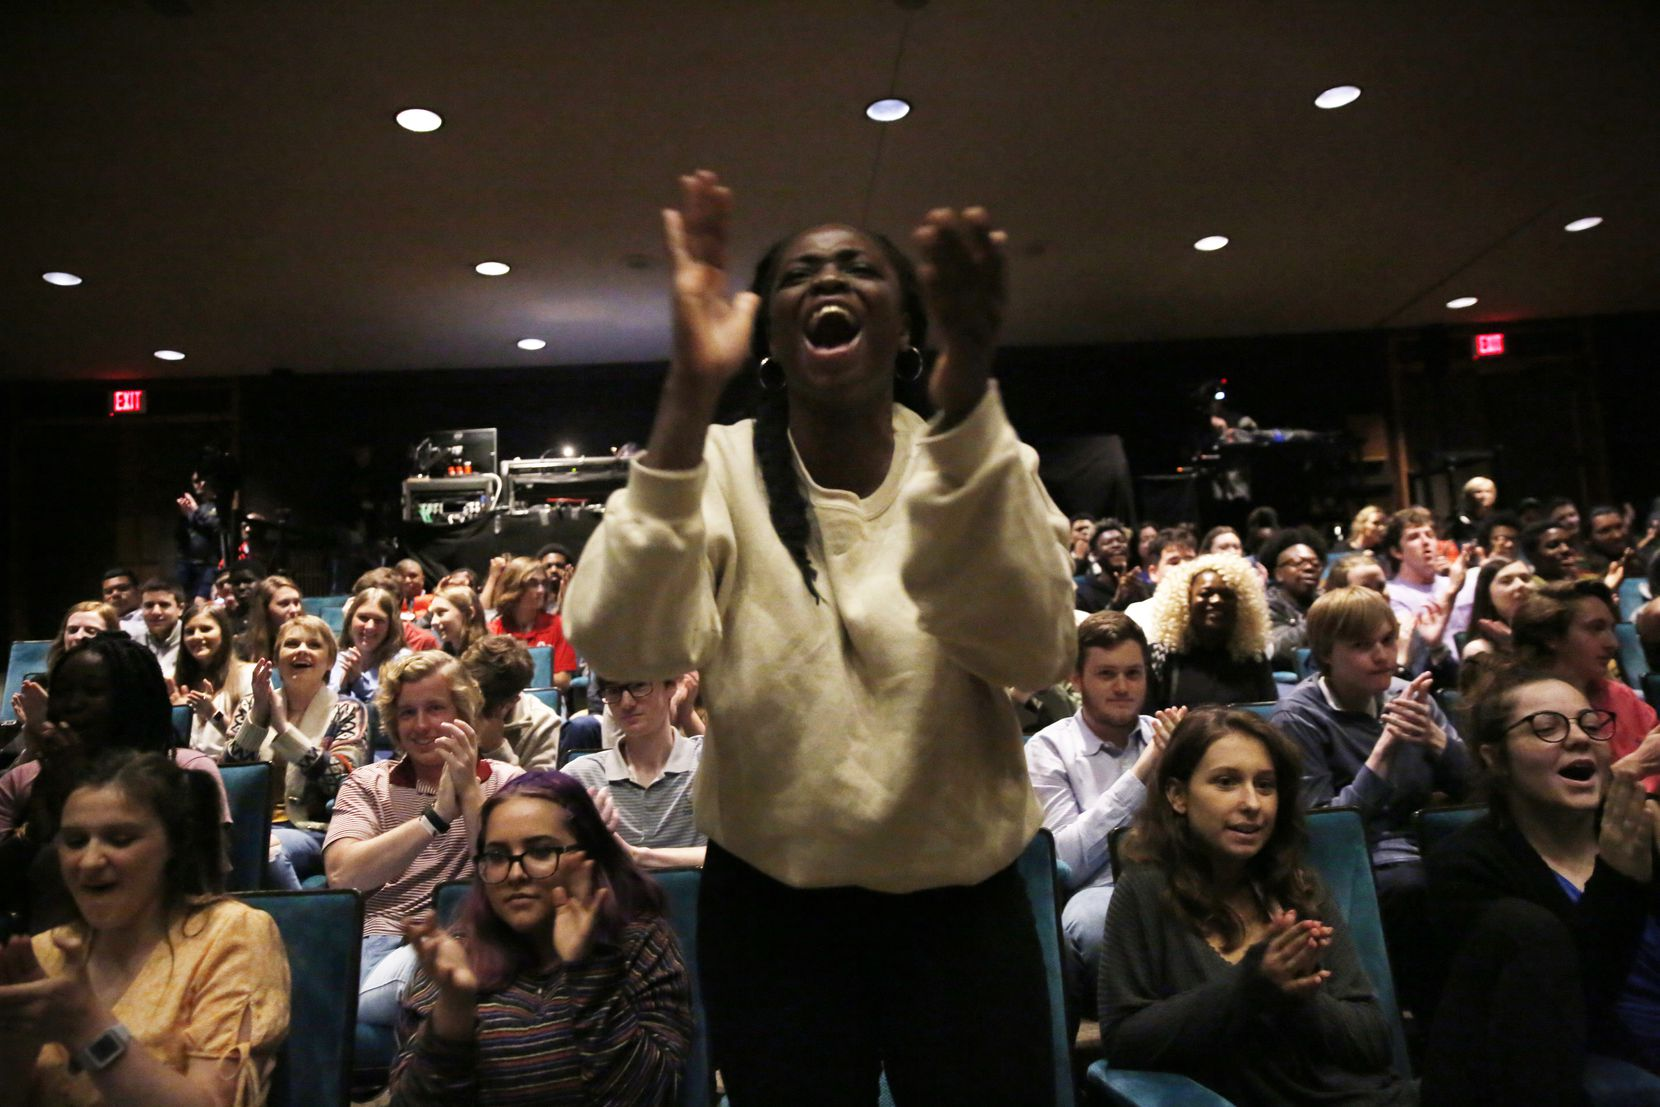 Mary Ukiri, a junior at Lake Highlands High School, cheers for her classmate as he performs during a Hamilton Education Program event at the Music Hall at Fair Park in Dallas on Thursday, May 2, 2019.